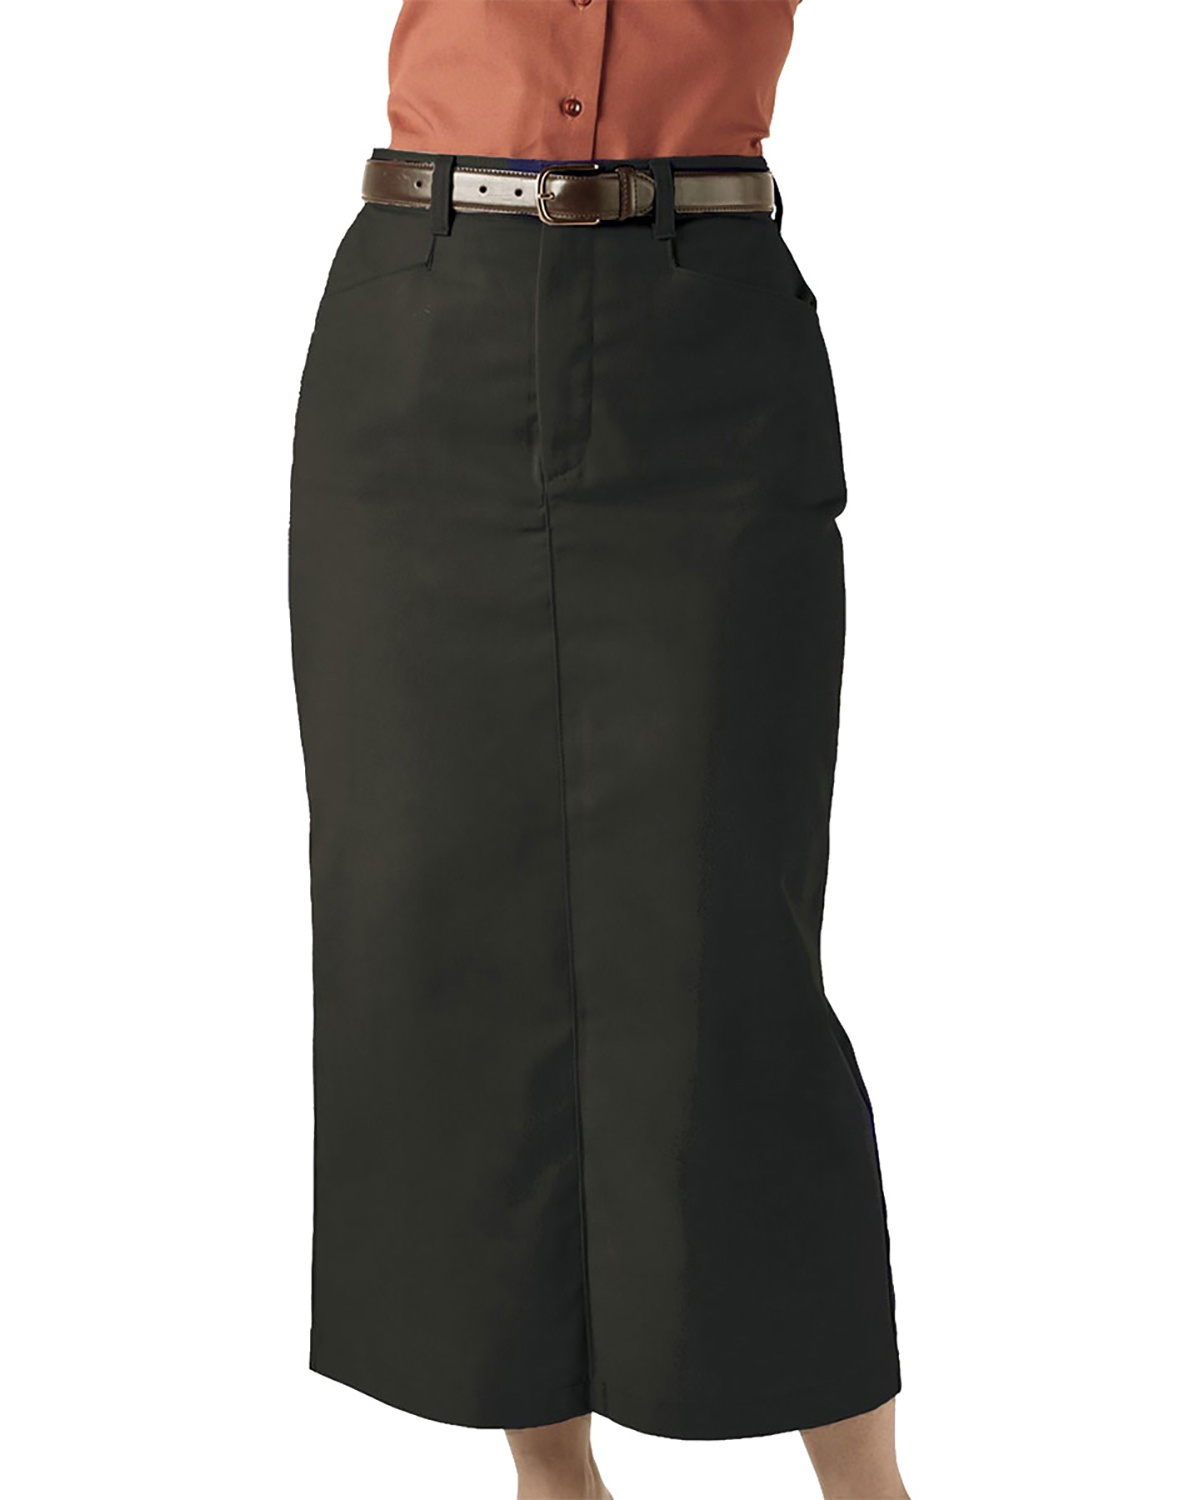 'Edwards 9779 Ladies' Blended Chino Skirt-Long Length'